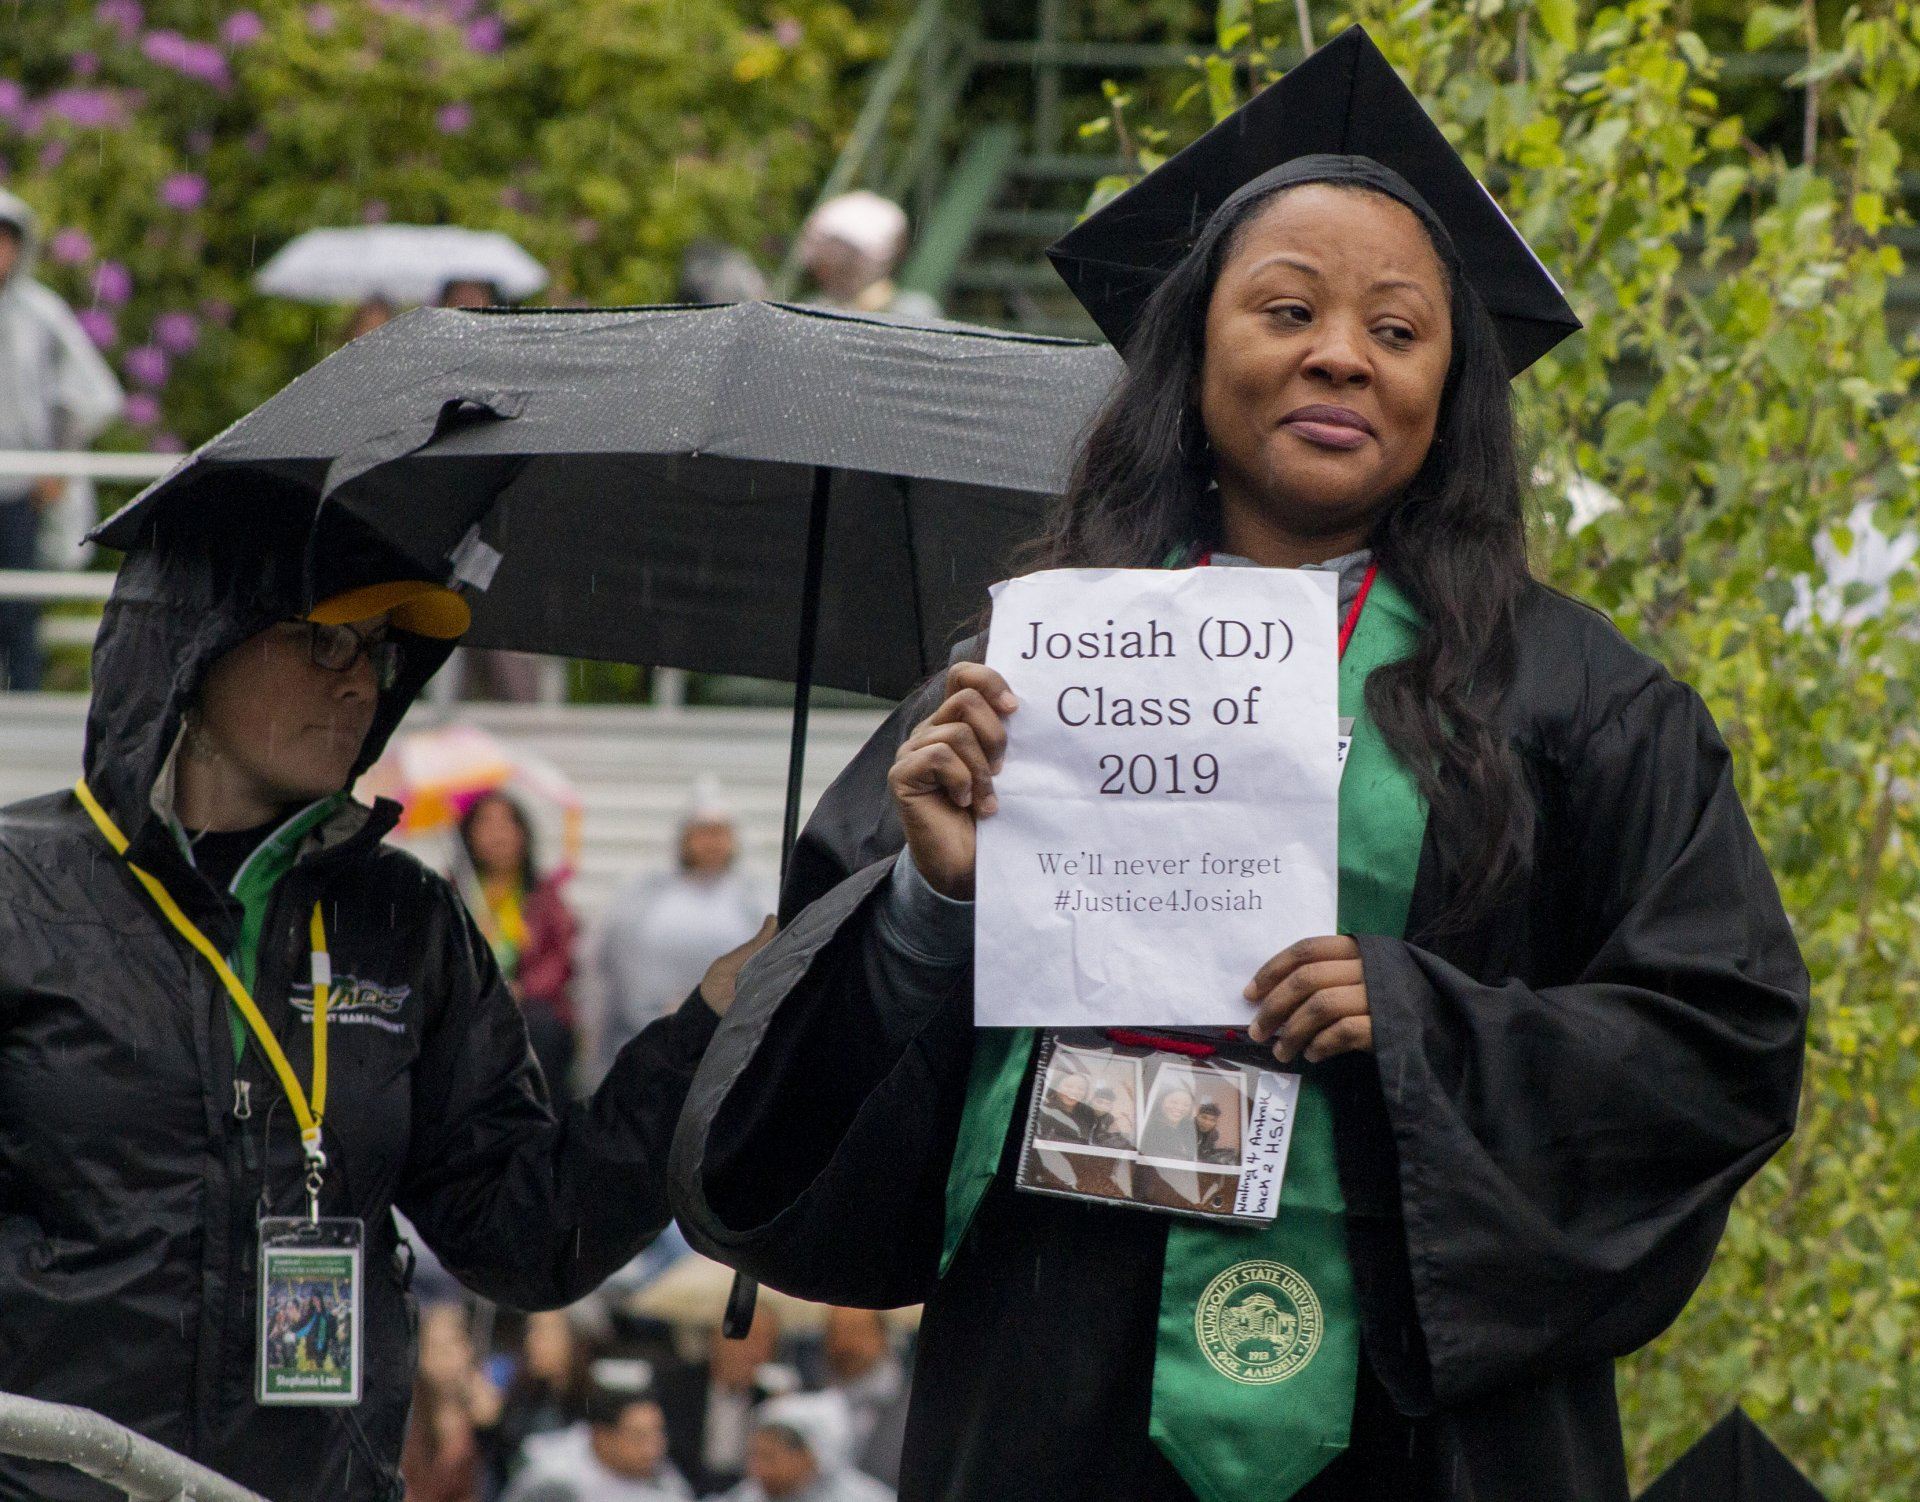 Charmaine Lawson stands on stage as her son's name is read at the Humboldt State University 2019 commencement on May 18, 2019., as Josiah is awarded a degree posthumously two years after his death off campus. | Photo by Thomas Lal